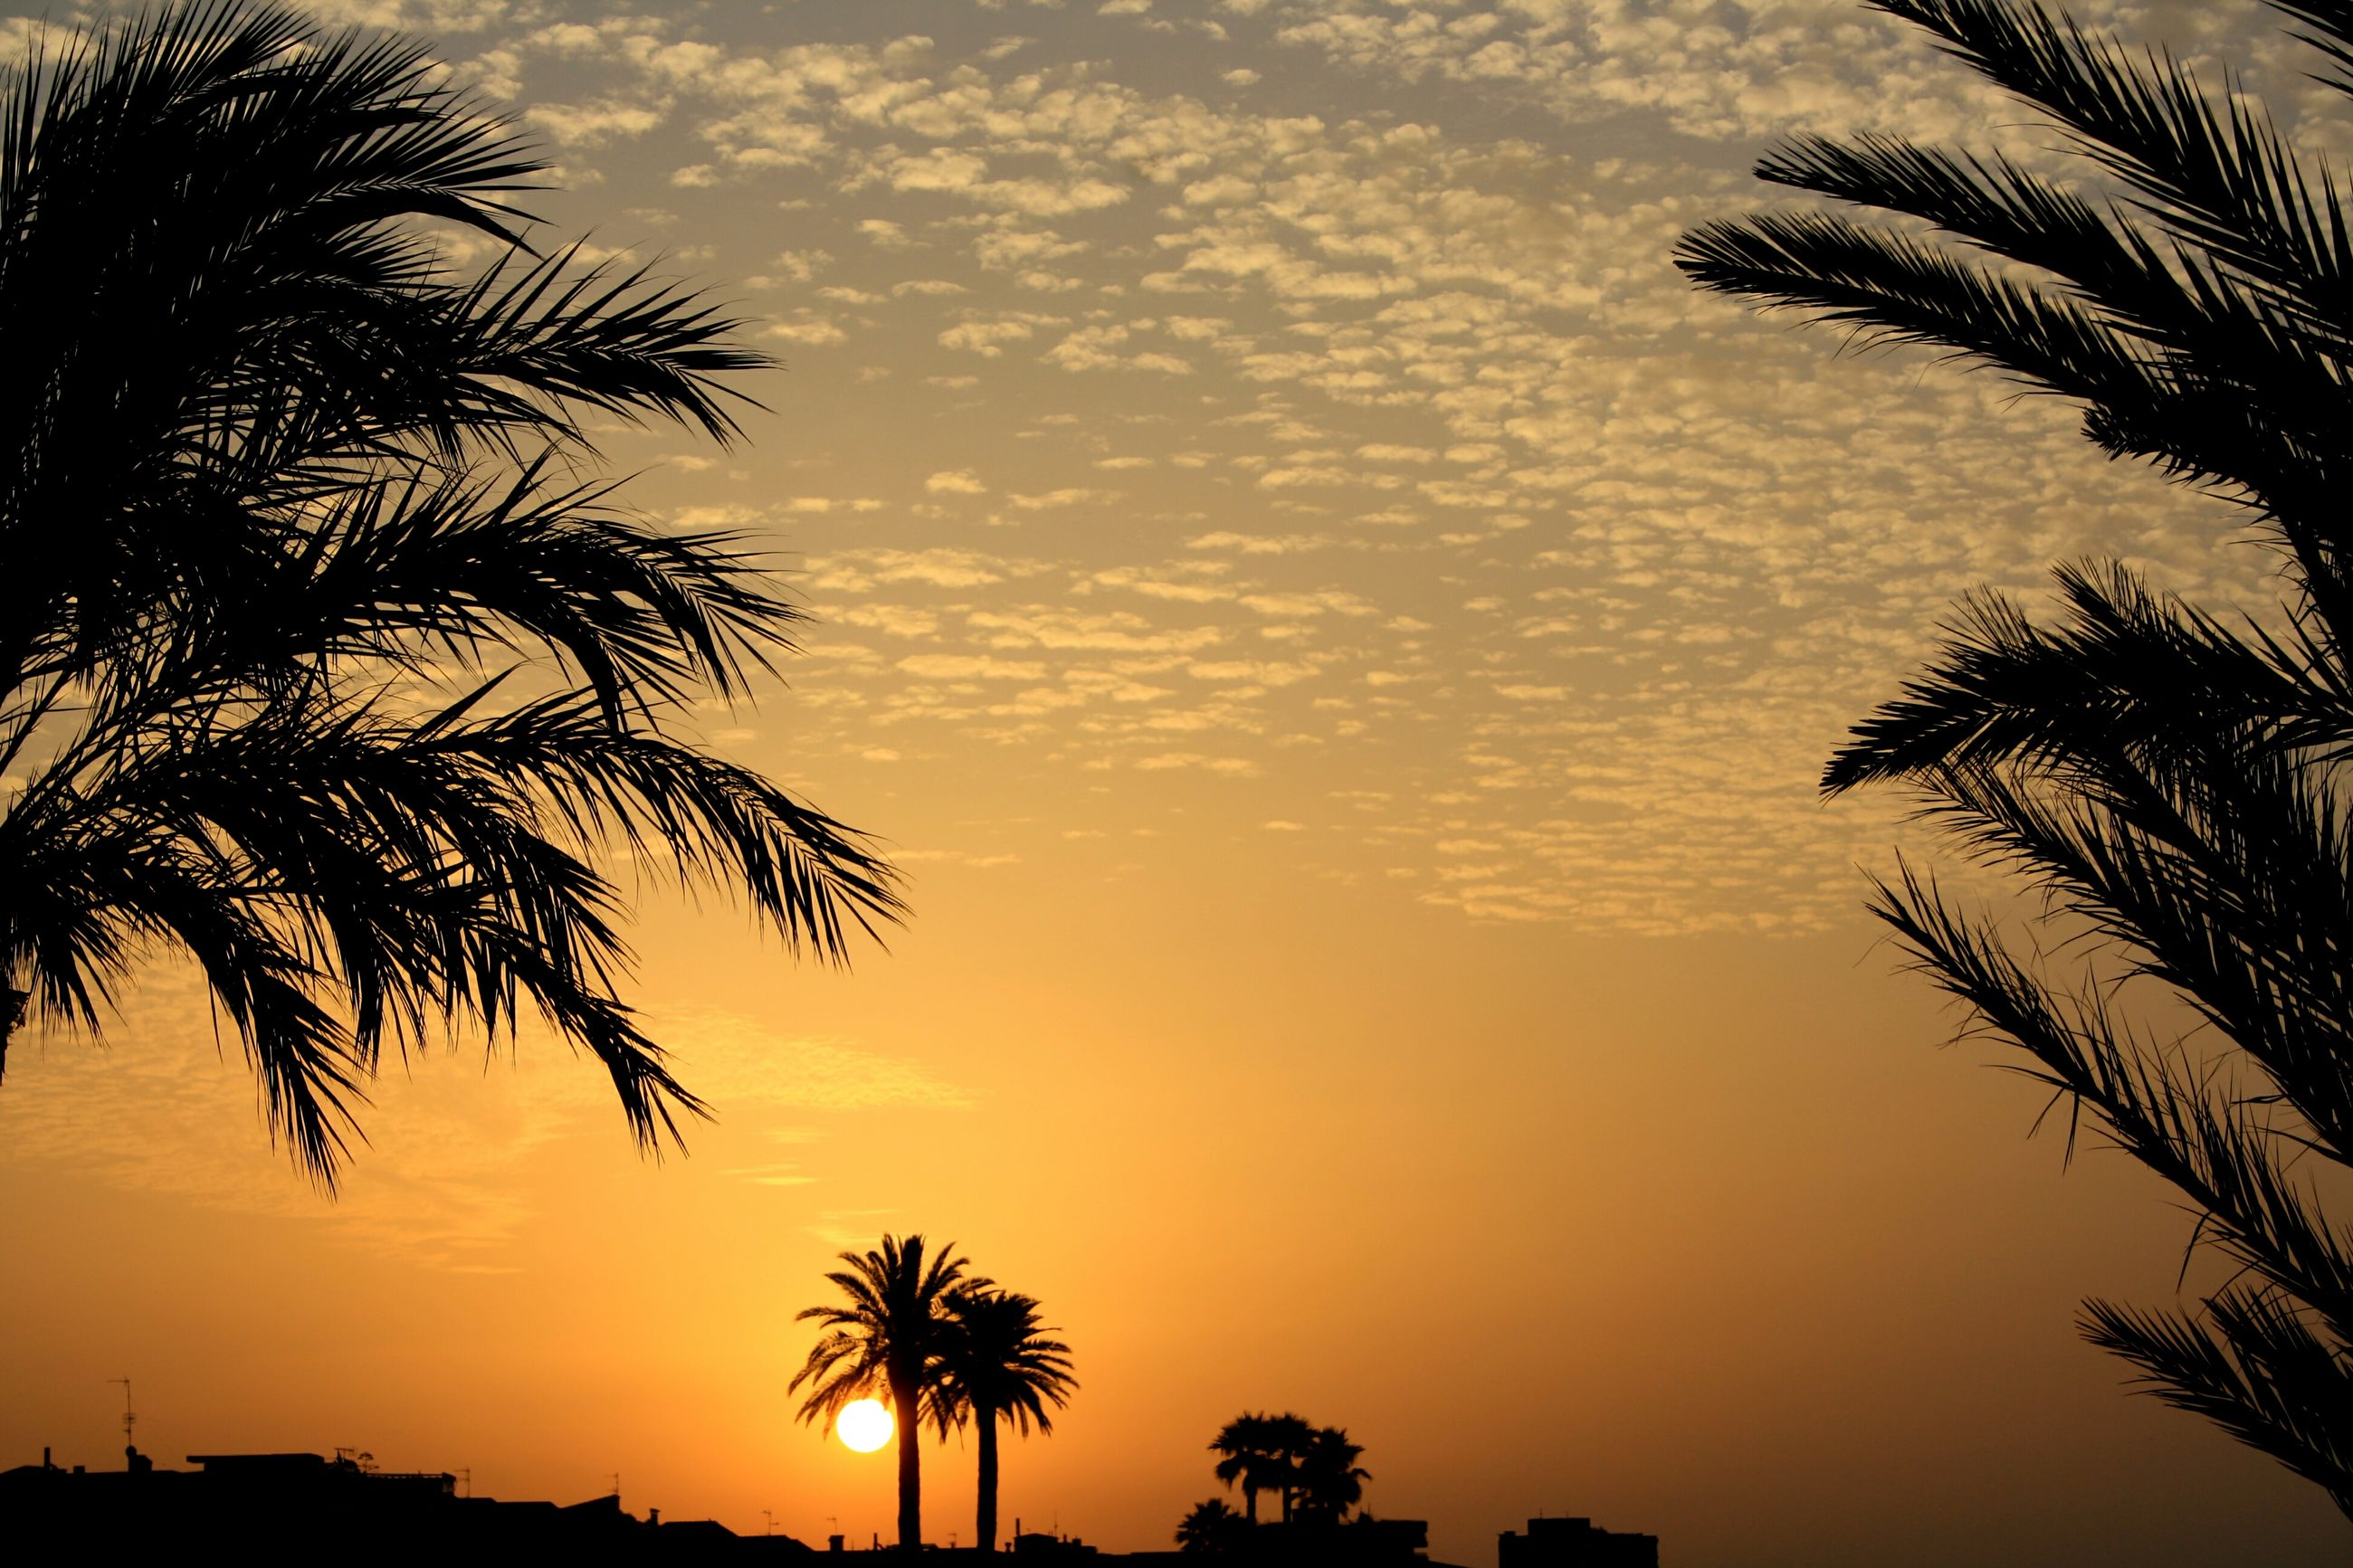 sunset, palm tree, silhouette, tree, scenics, tranquil scene, beauty in nature, tranquility, sky, orange color, idyllic, nature, growth, cloud - sky, outdoors, tree trunk, sun, majestic, coconut palm tree, romantic sky, branch, outline, tropical tree, moody sky, palm frond, non-urban scene, atmospheric mood, dramatic sky, remote, no people, palm leaf, tall - high